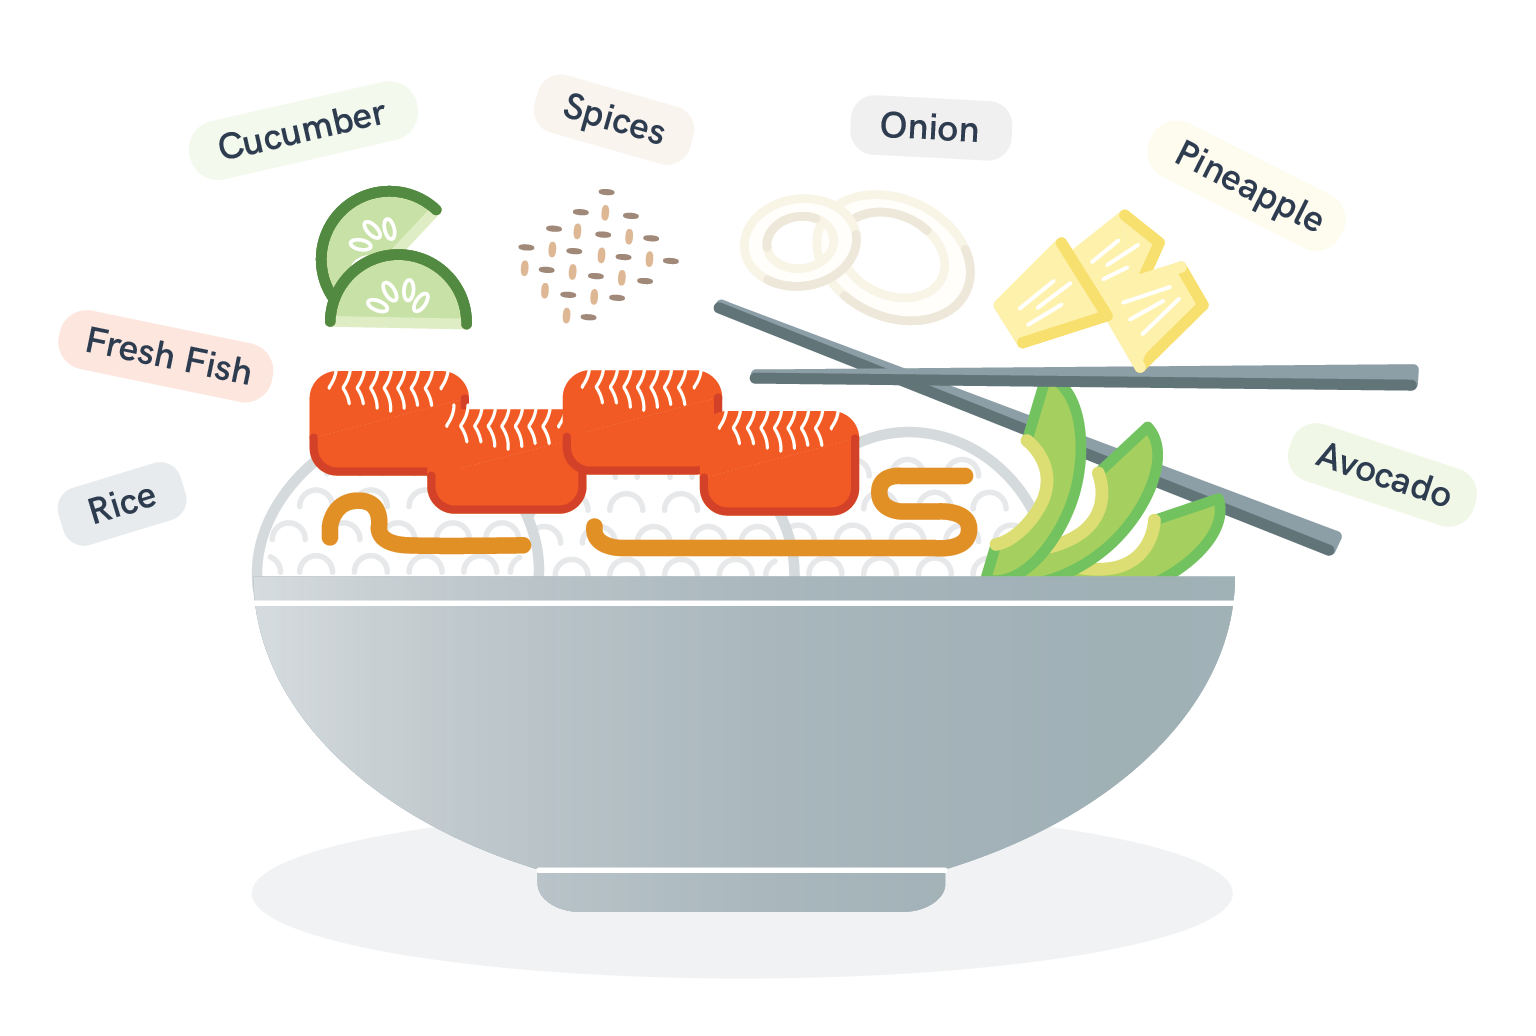 Illustration of a poke bowl with all of the ingredients including rice, fish, avocado, cucumber, spices